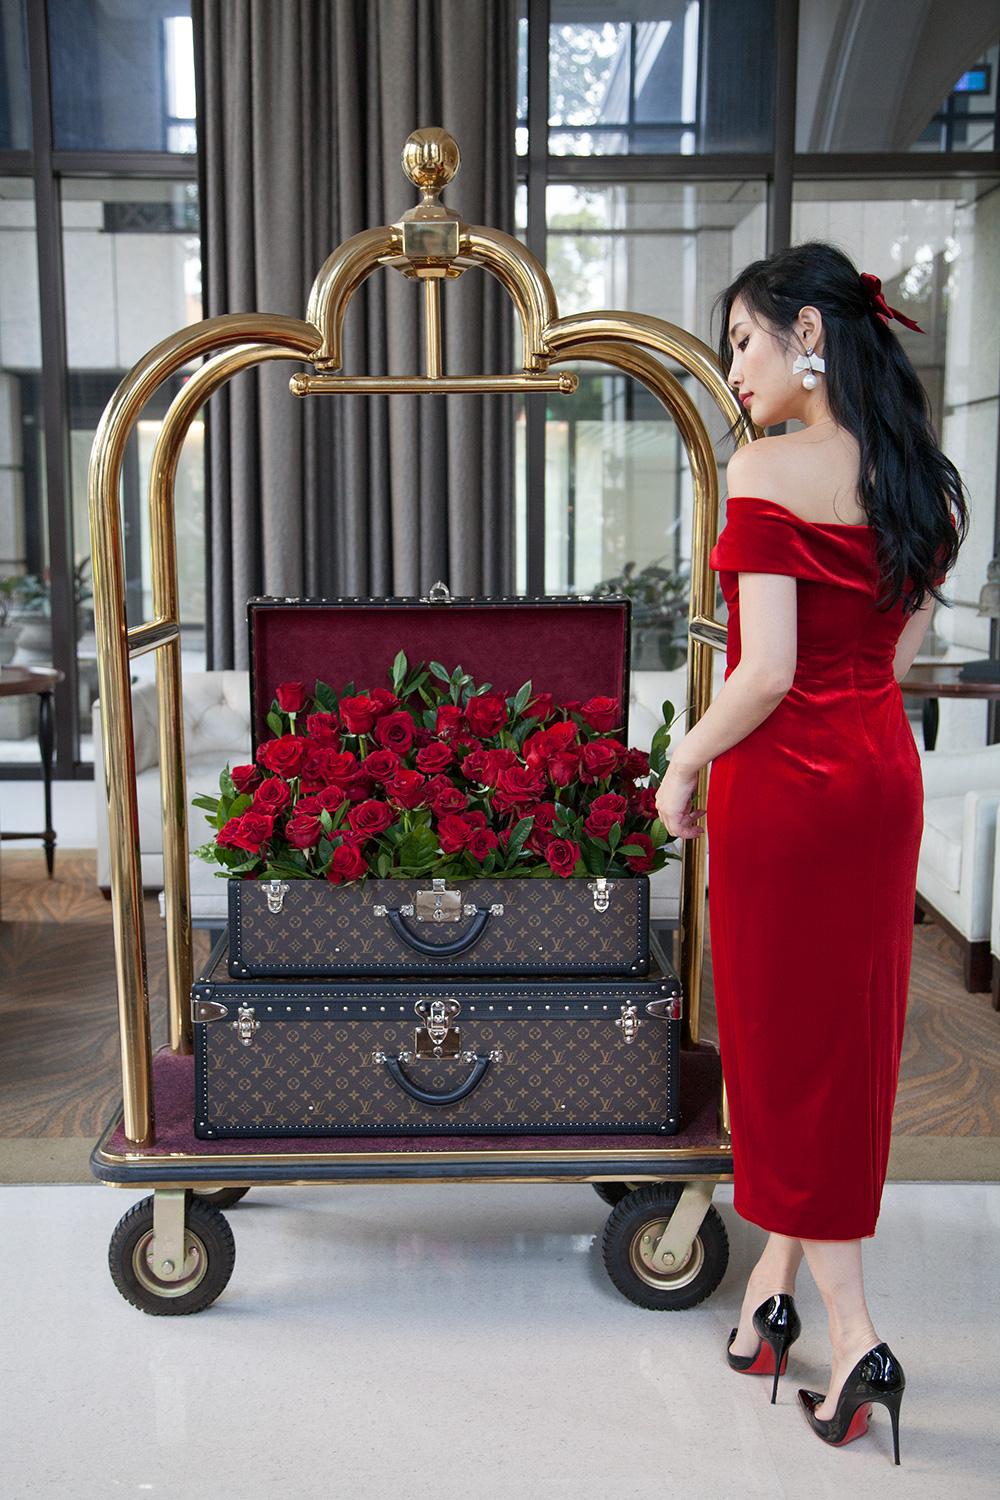 9 Days of Valentine - Day 2: Read Romance Novels | Of Leather and Lace - Fashion & Travel Blog by Tina Lee | red dress outfit, valentines outfit ideas, red soles, christian louboutin, louis vuitton trunk, red roses, romantic outfits, hotel trolley